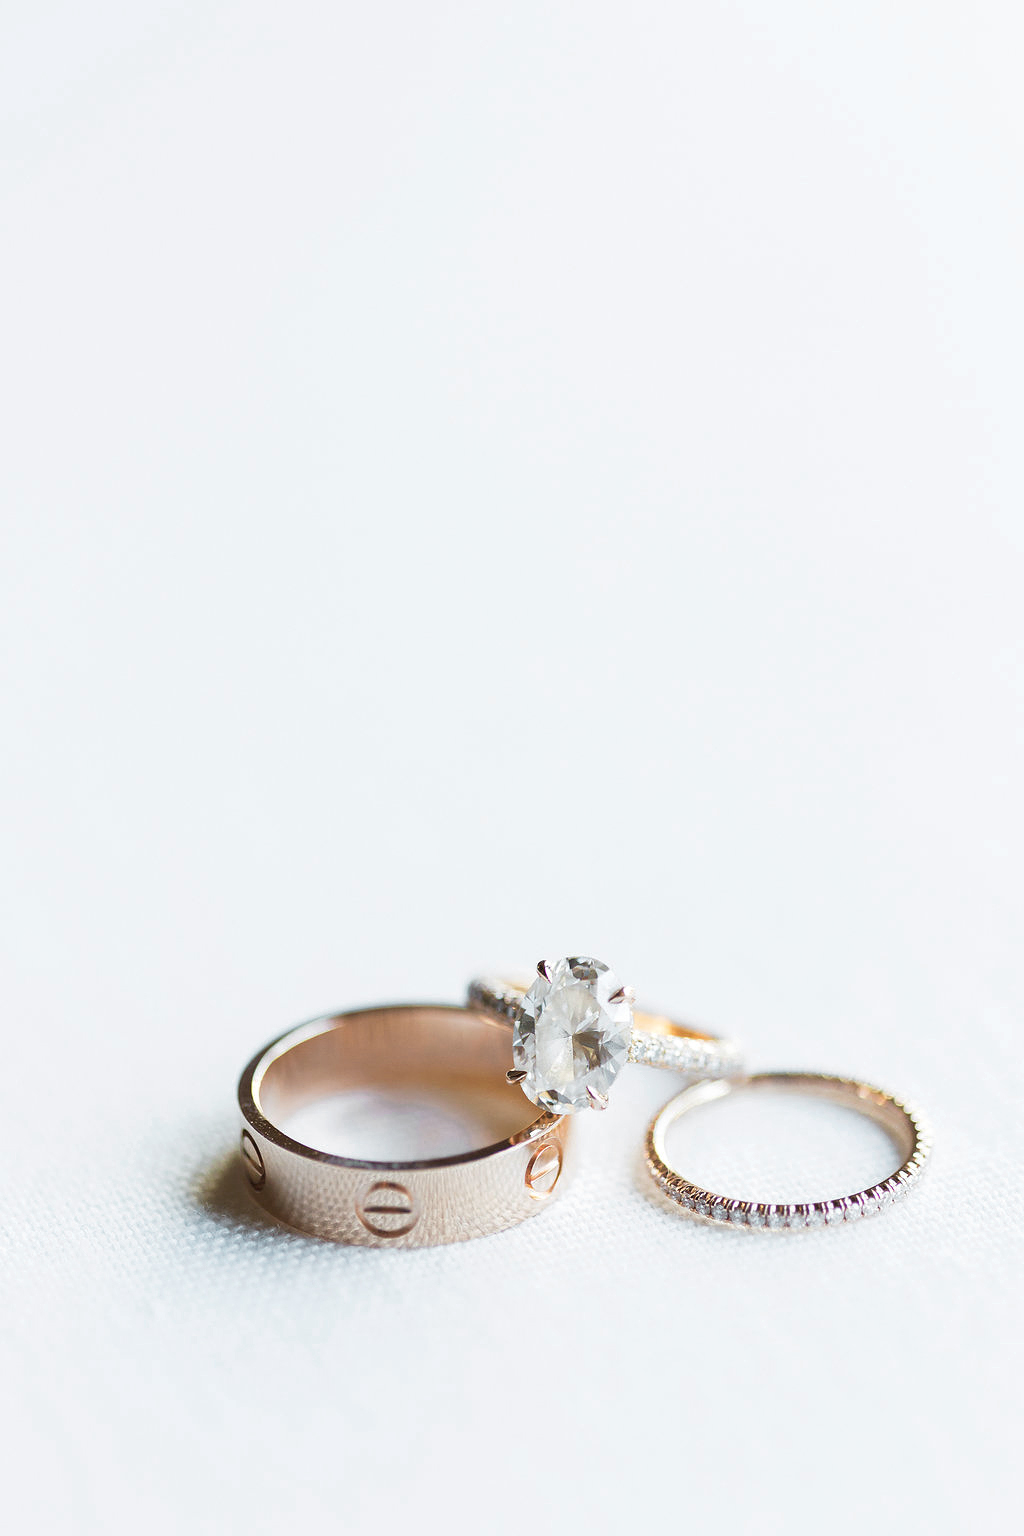 emily adhir wedding rings